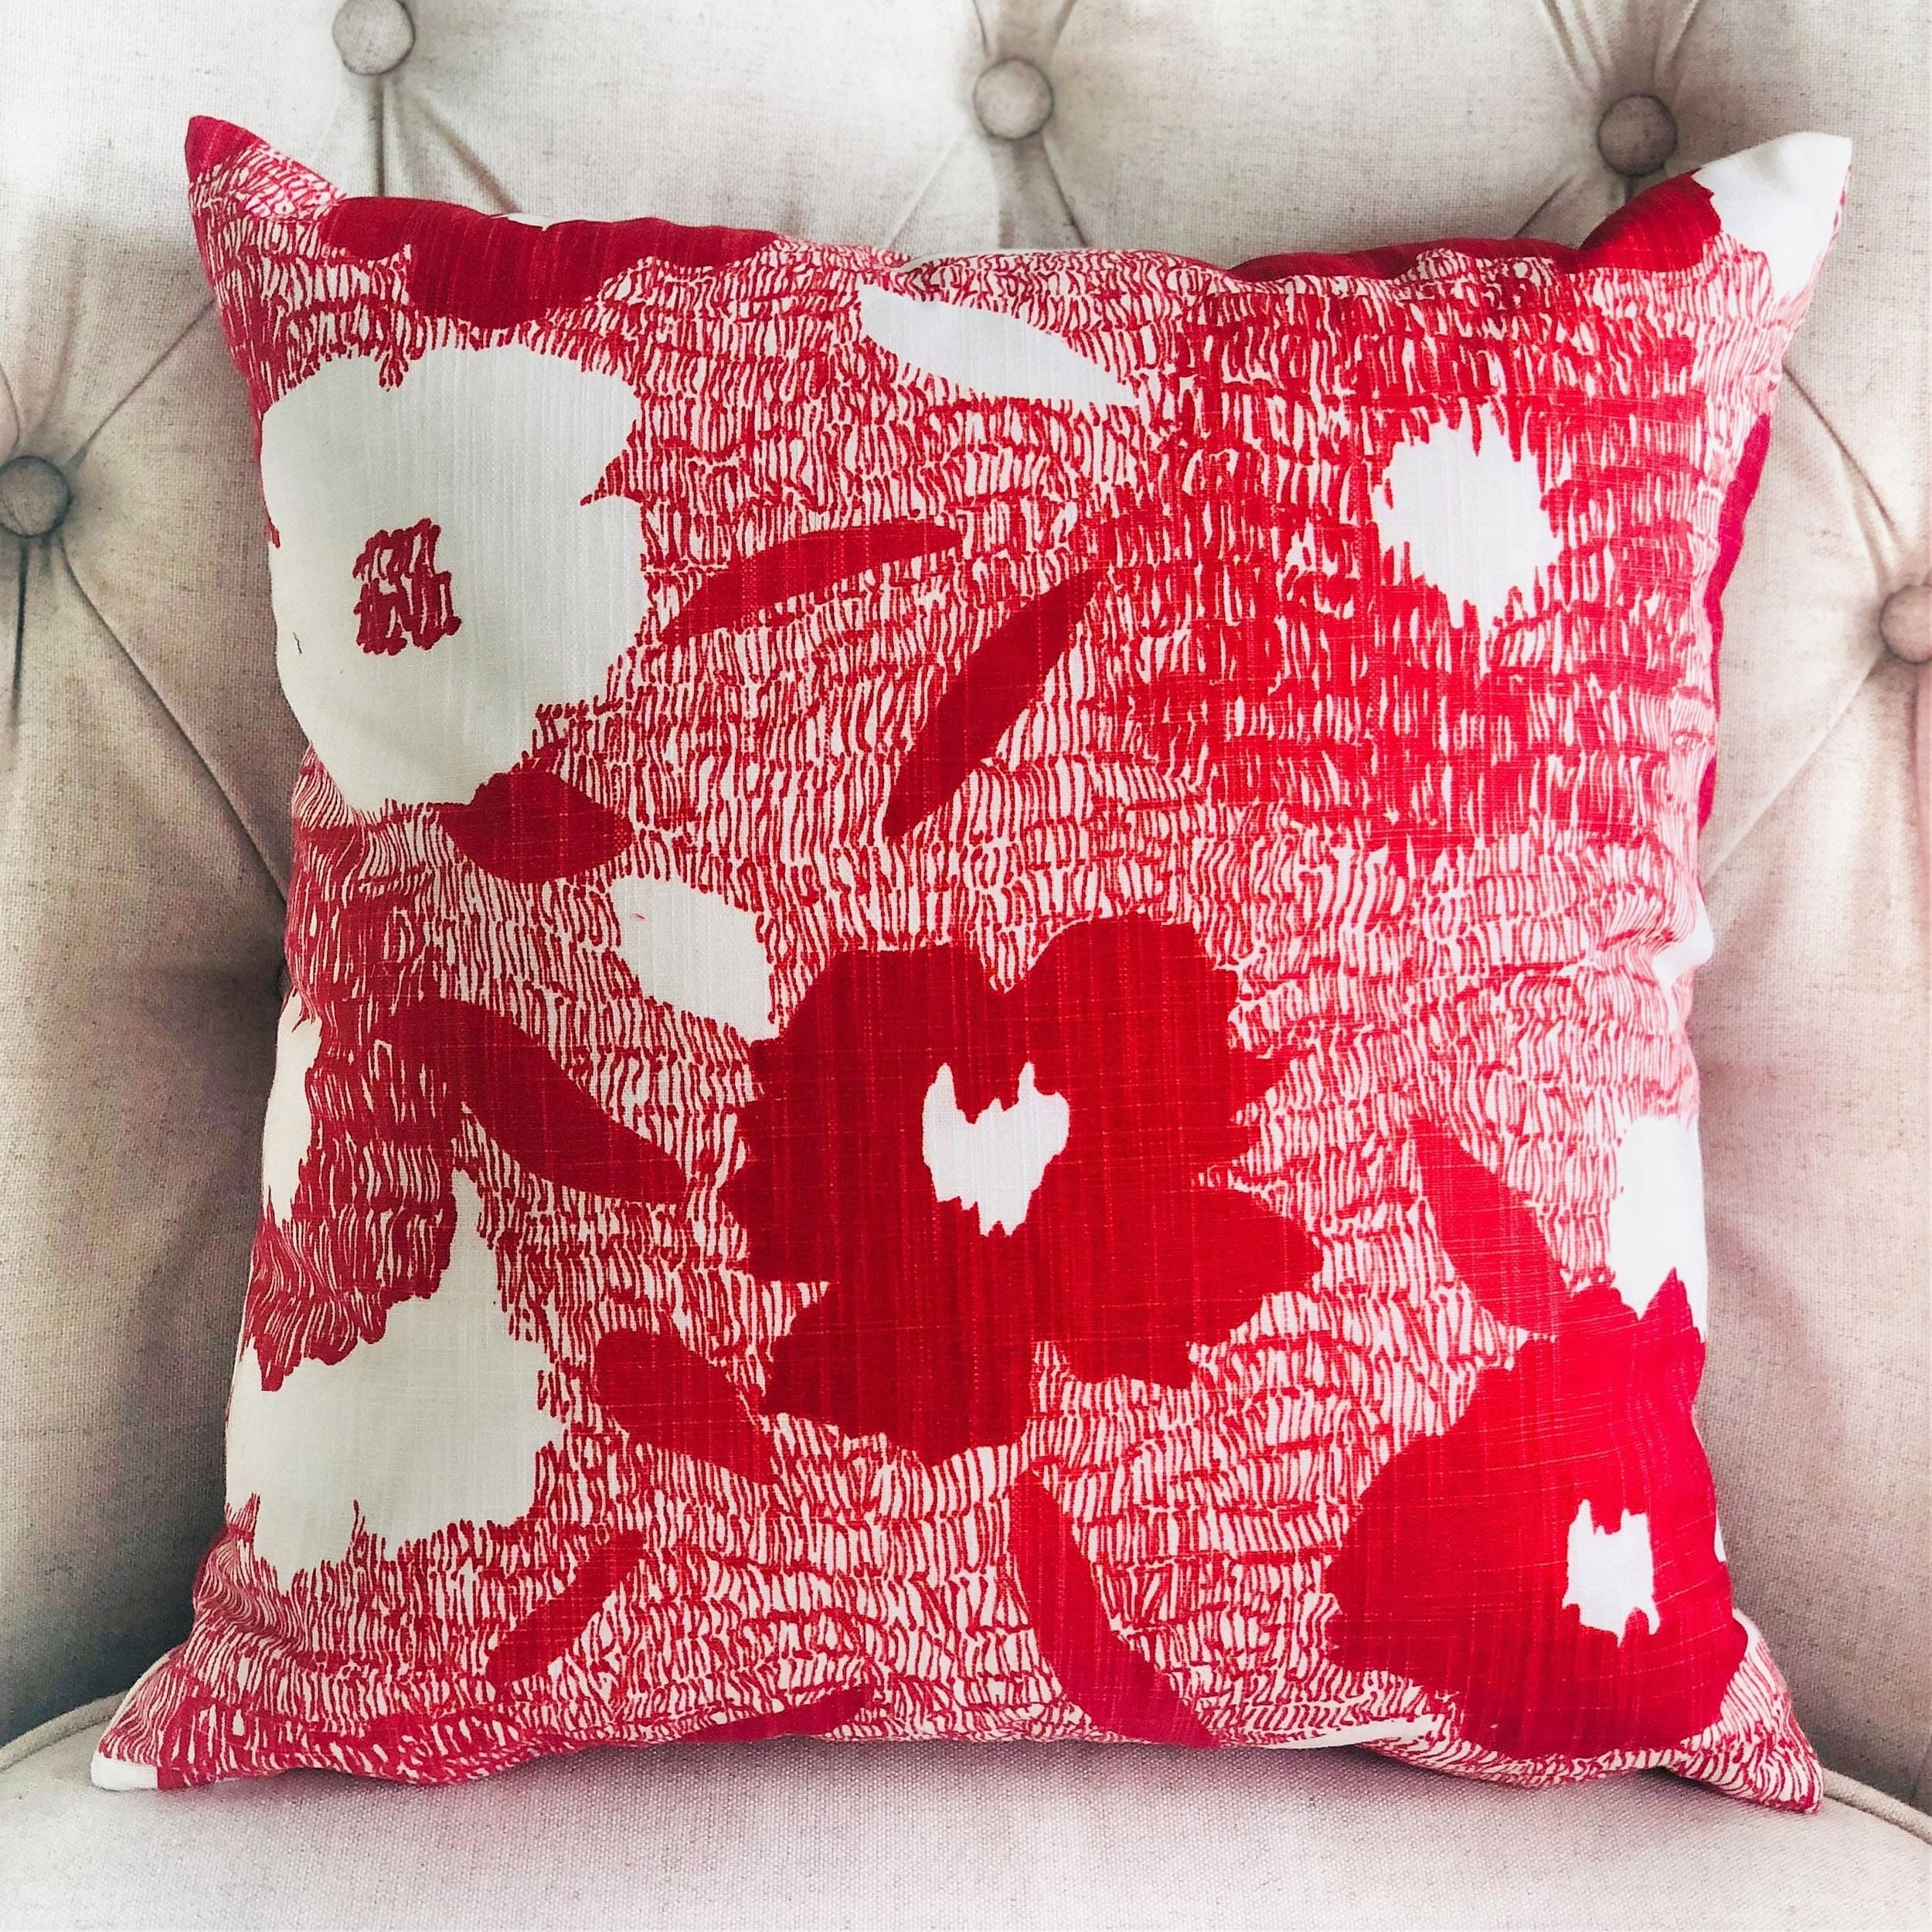 Plutus Hibiscus Red And Beige Luxury Decorative Throw Pillow Overstock 21256005